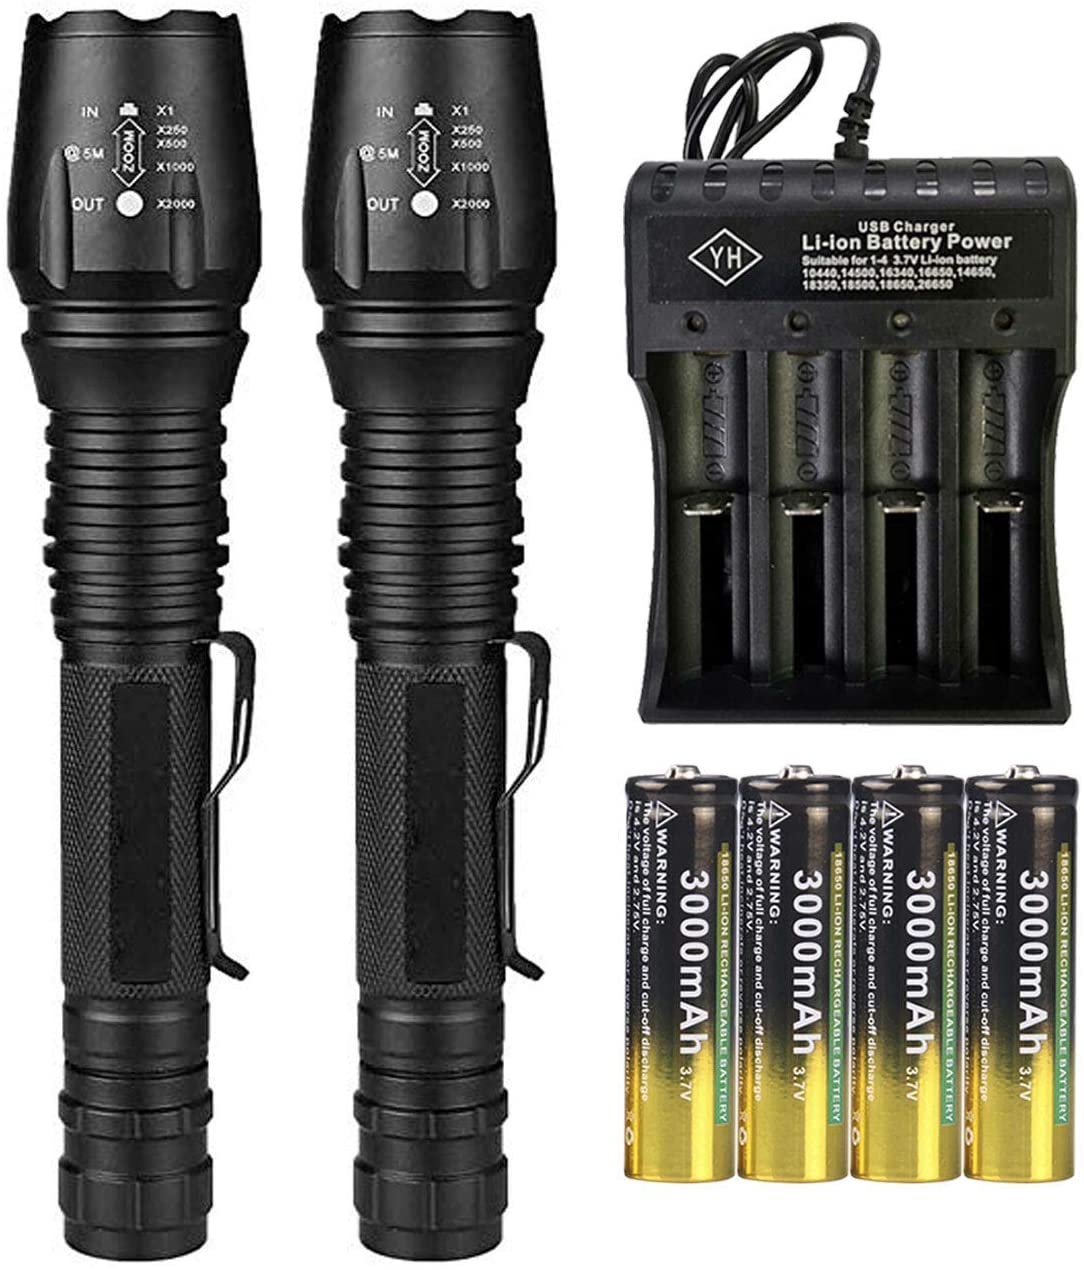 2 Set18650 Tactical Flashlight 5 Modes High 2000 Lumens Rechargeable Zoomable LED Flashlights with 4 Pack 3000mAh 3.7v li-ion rechargeable battery and 4 Slots USB Charger for Camping Fishing Hiking